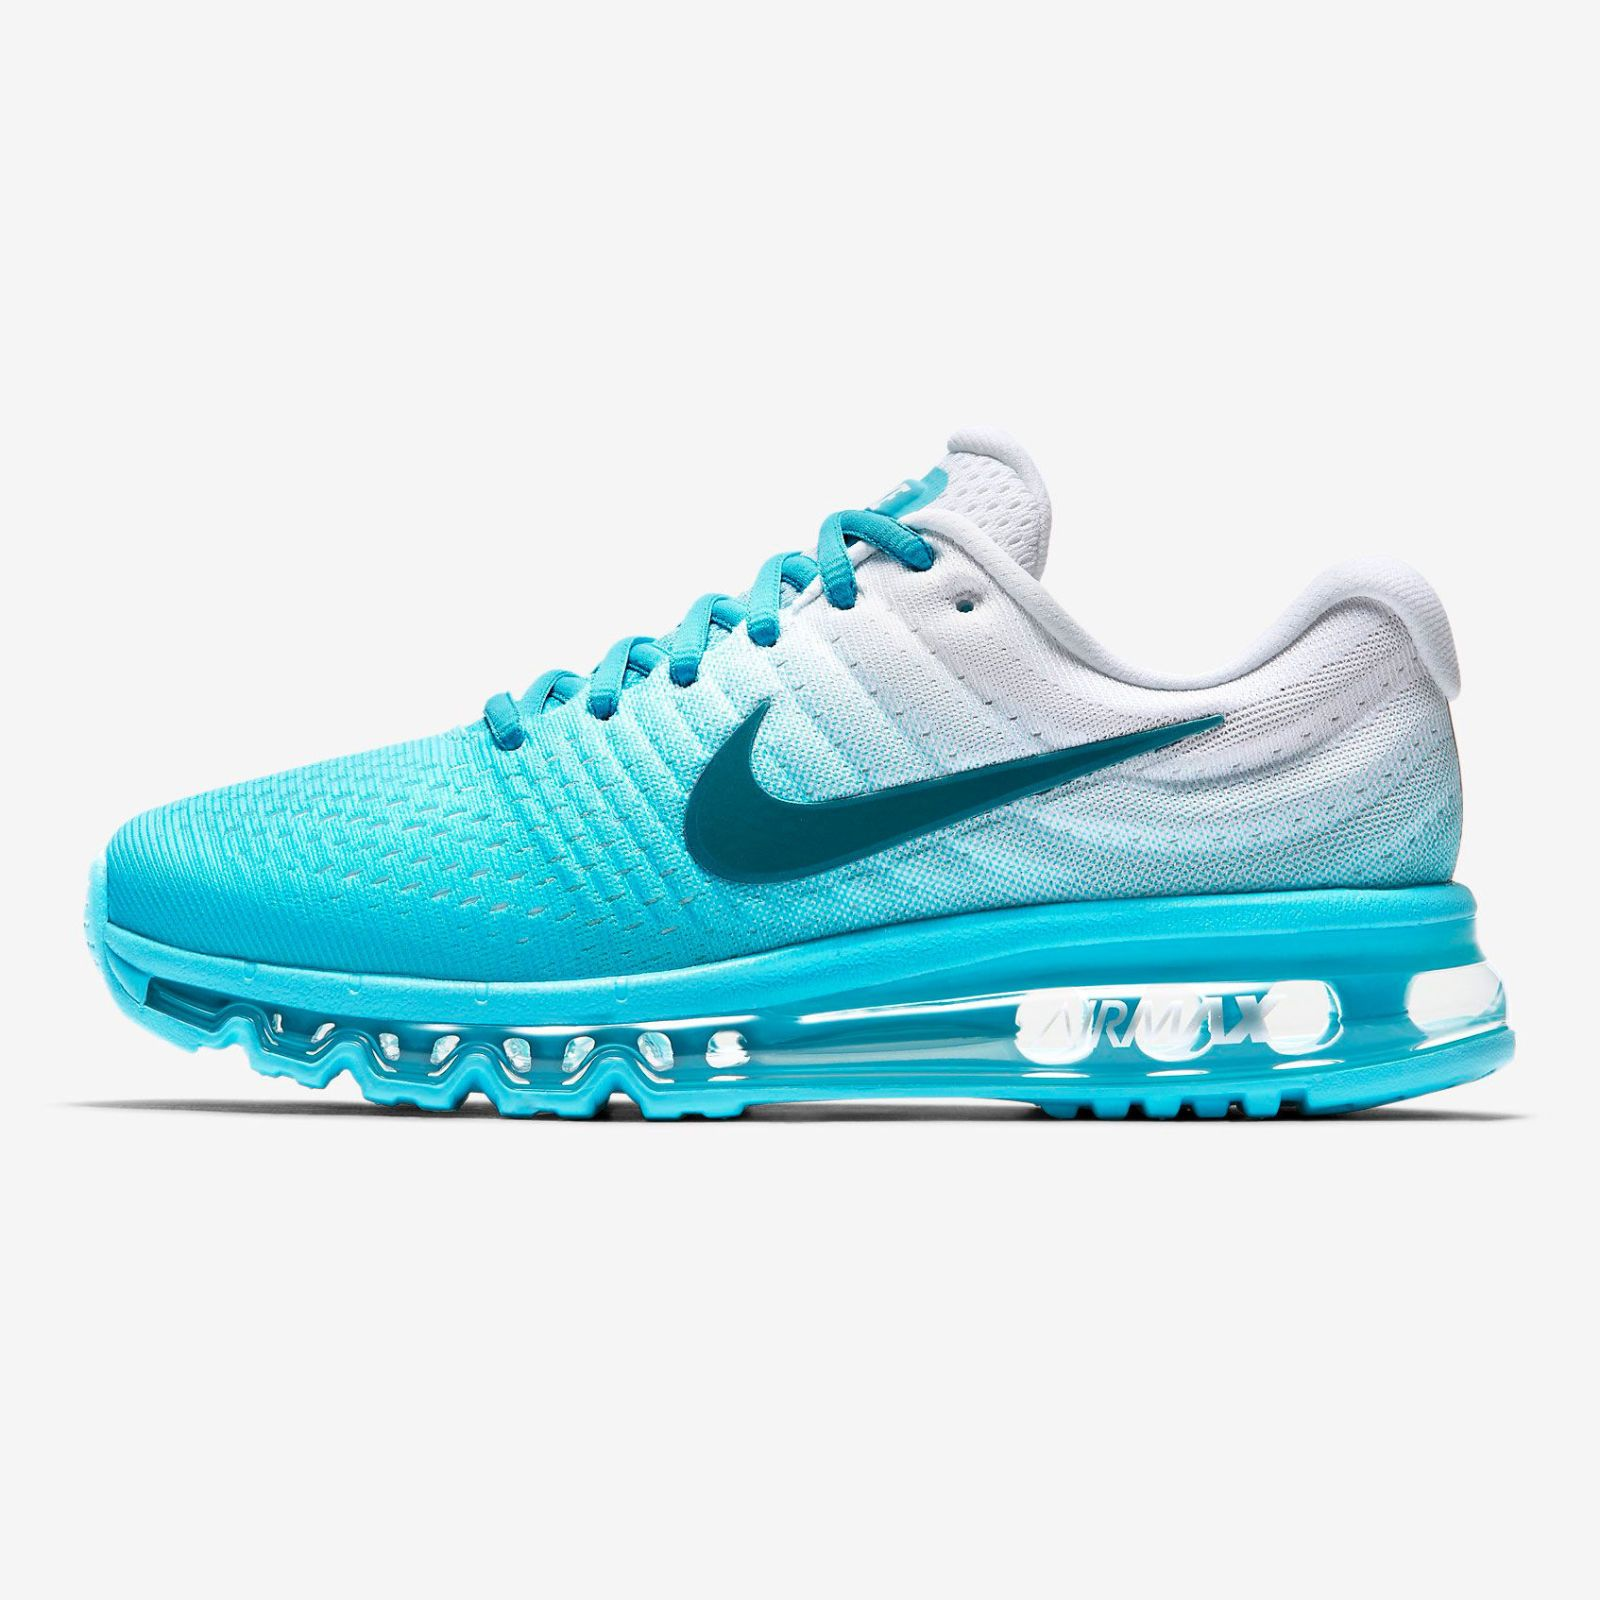 more photos 59ed5 afe8f Nike Air Max 2017 for Women